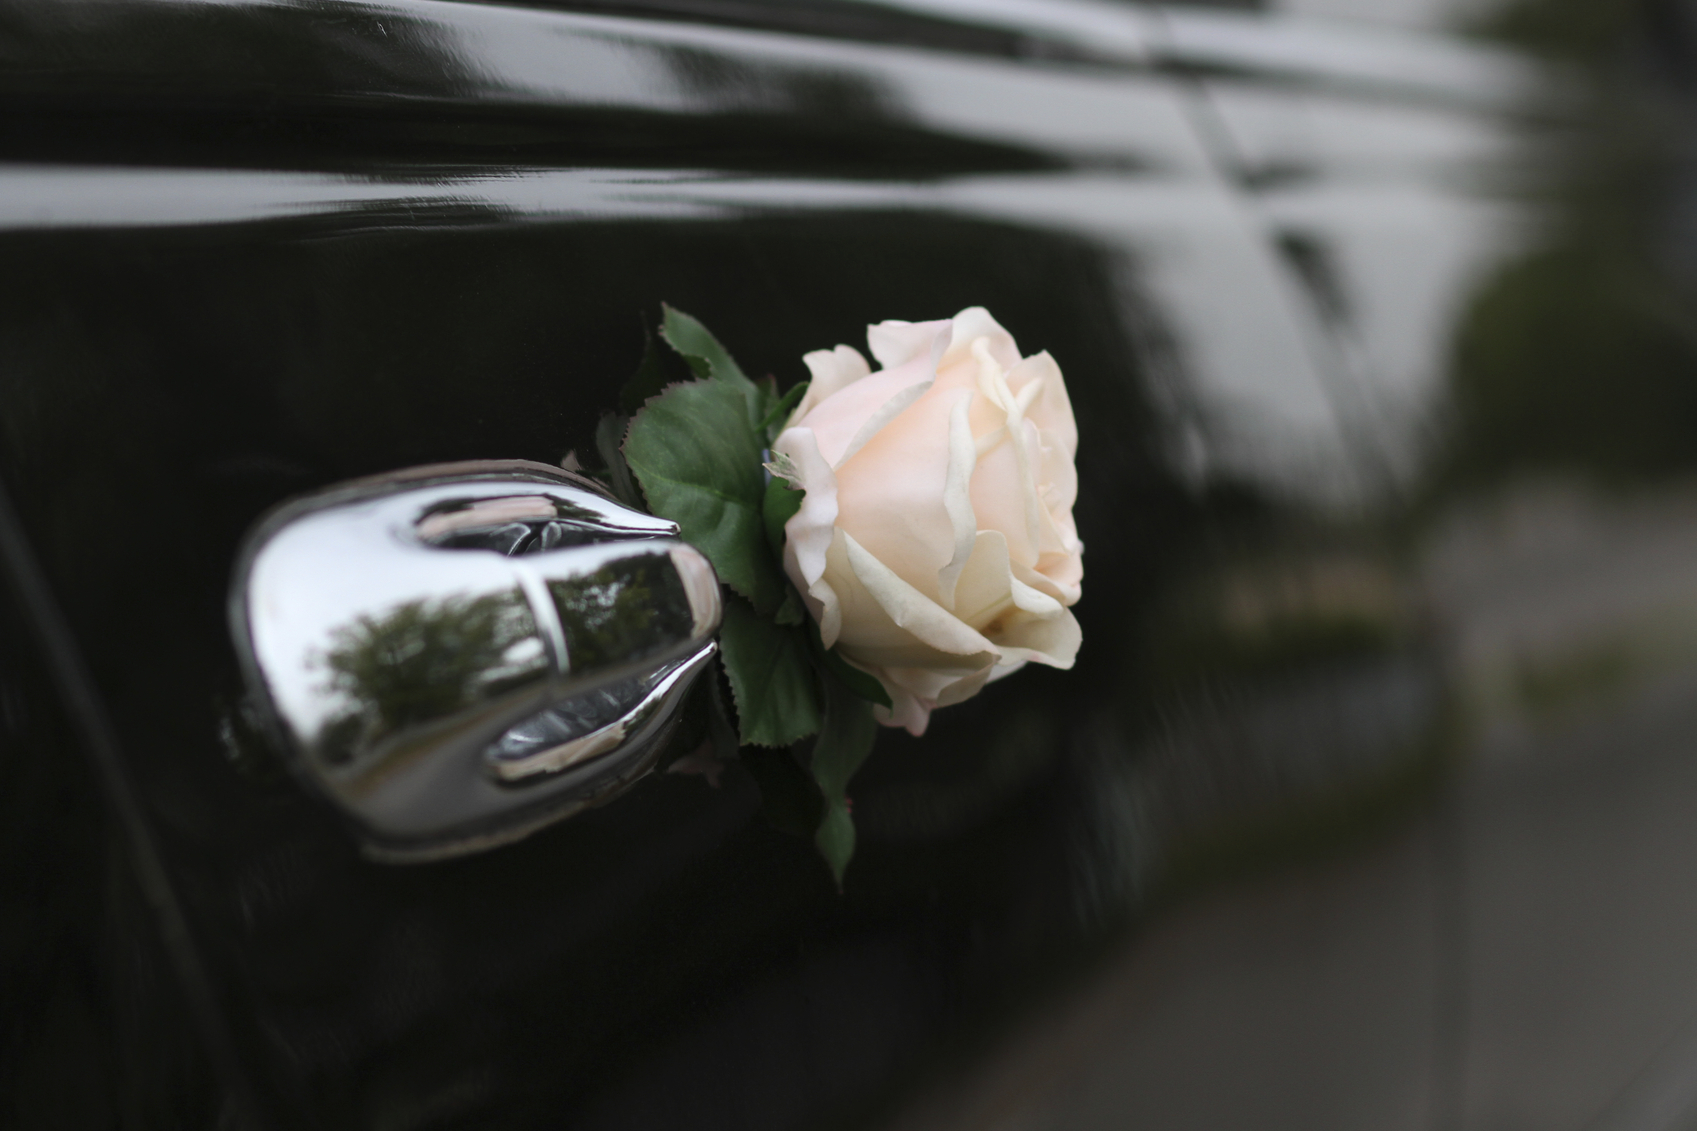 Decorative flower on the door of black wedding limo